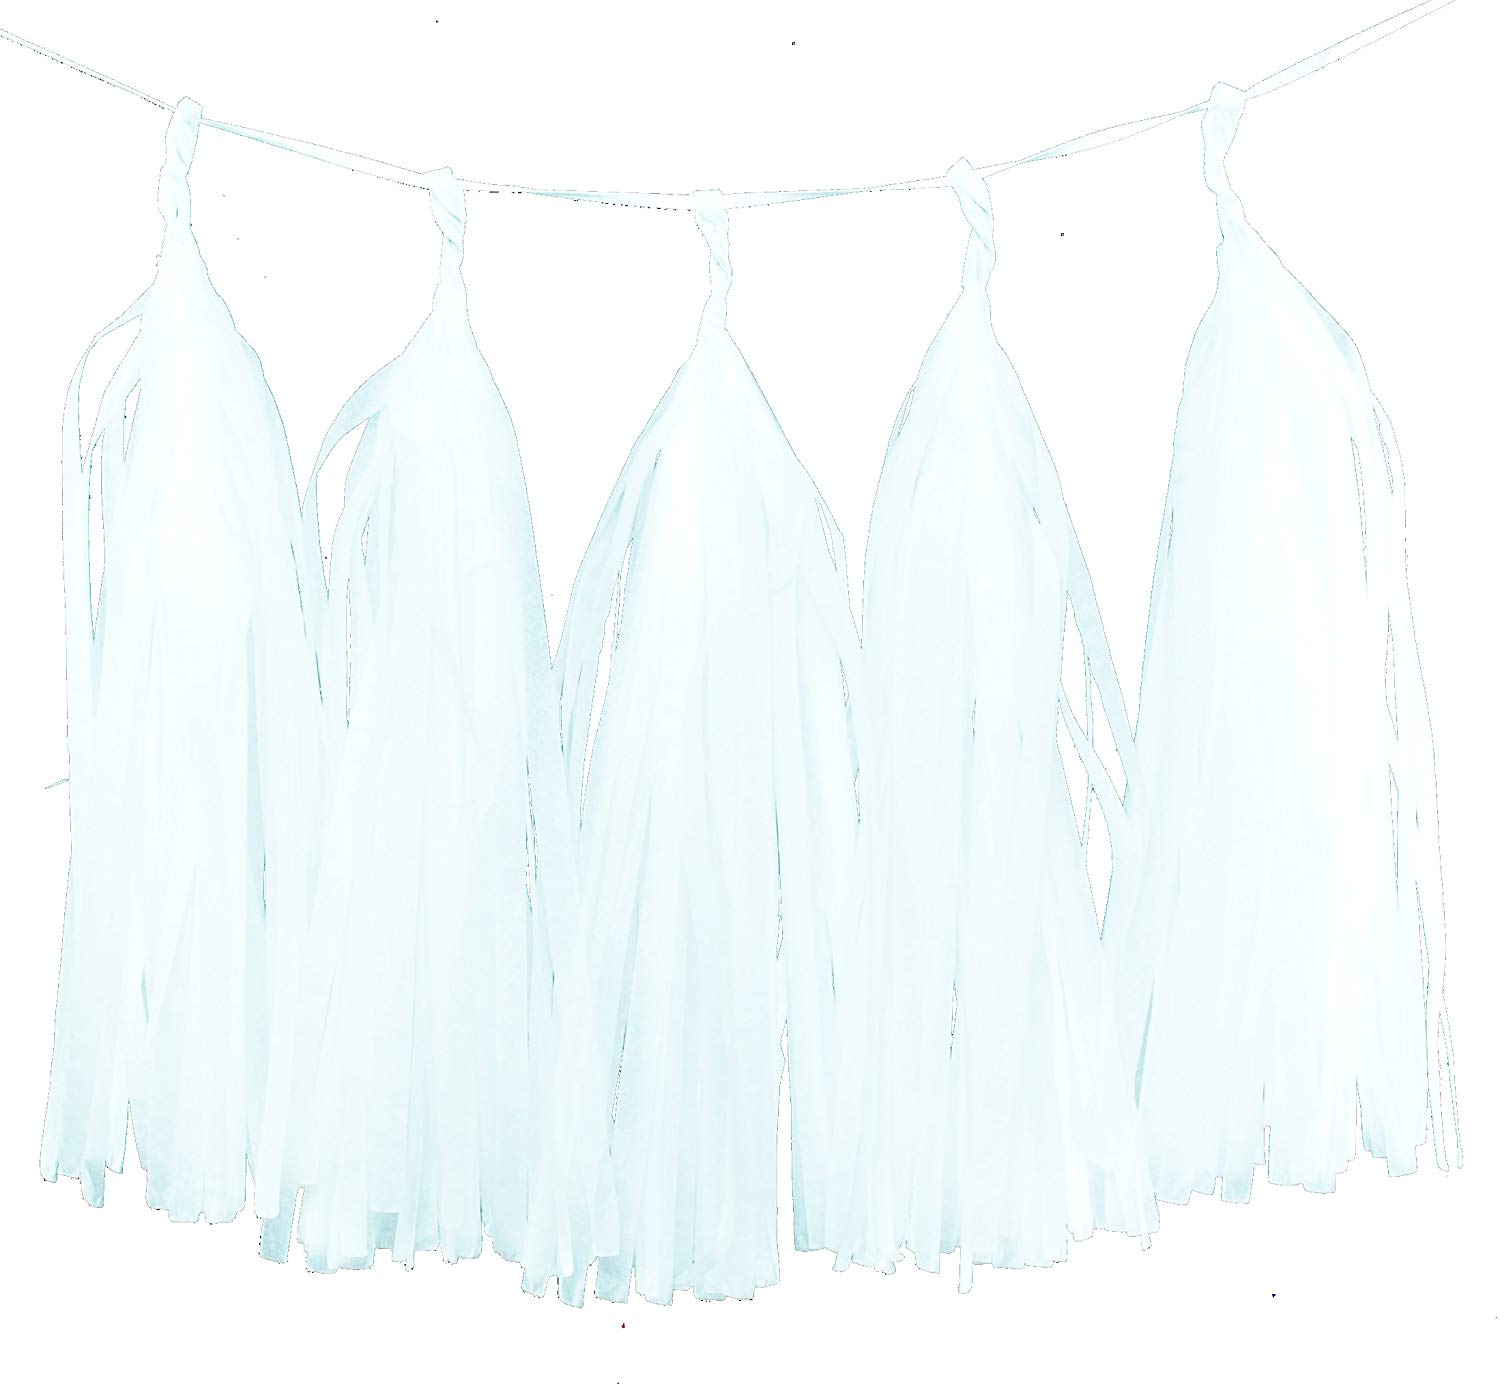 White Wedding Backdrops, White Tissue Paper Tassels (Set of 5) - Party Garland, Streamer Decorations, Bunting Banner, Wedding Accessories